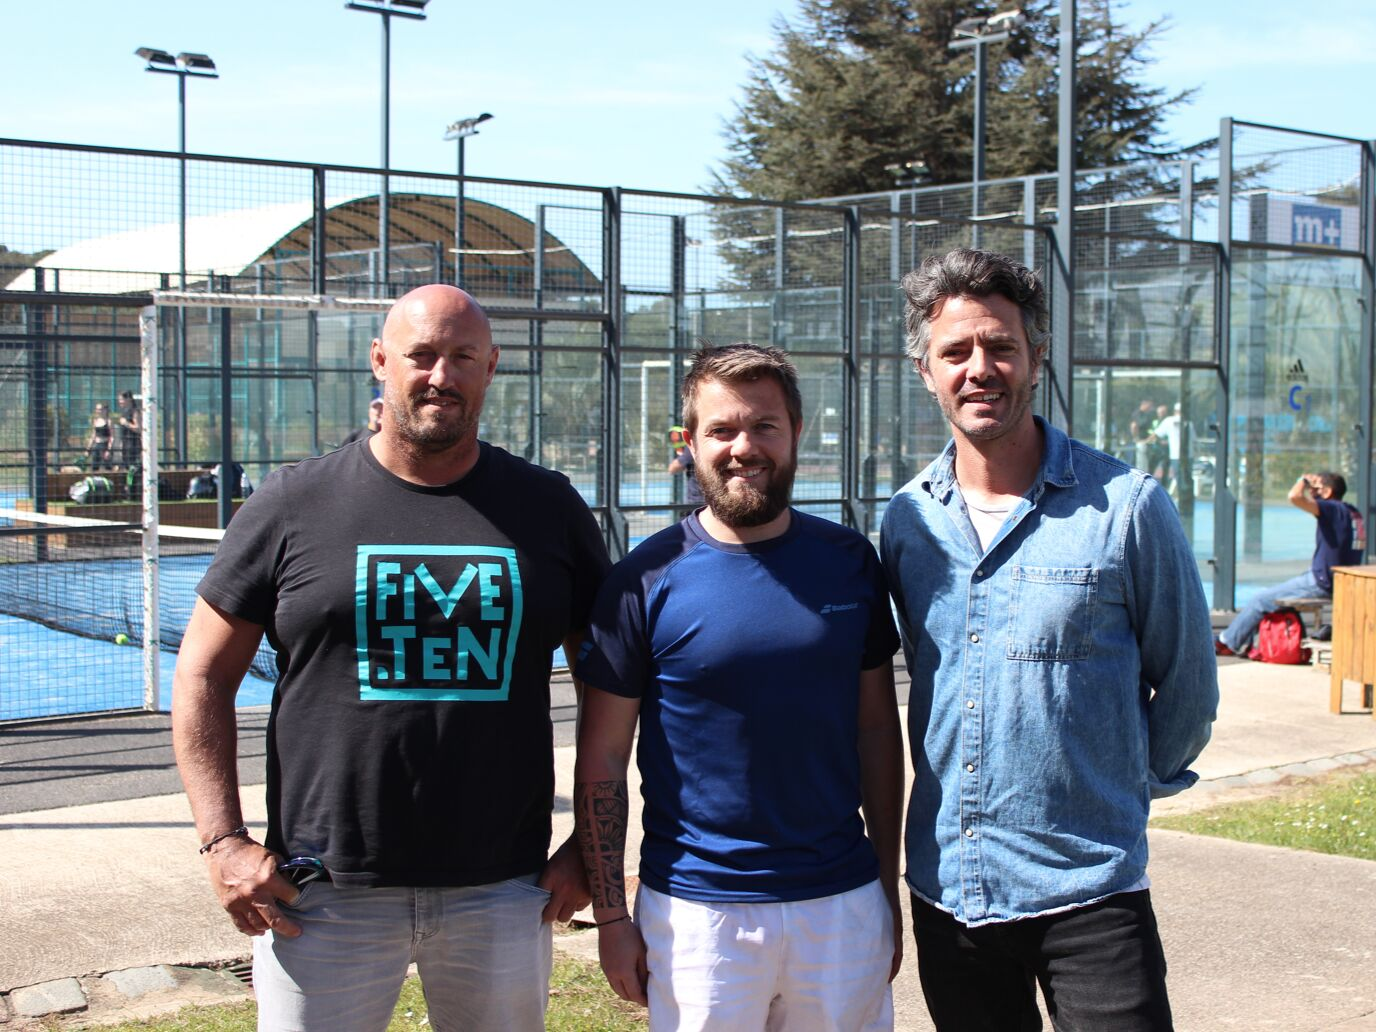 Le padel, the fastest growing sport